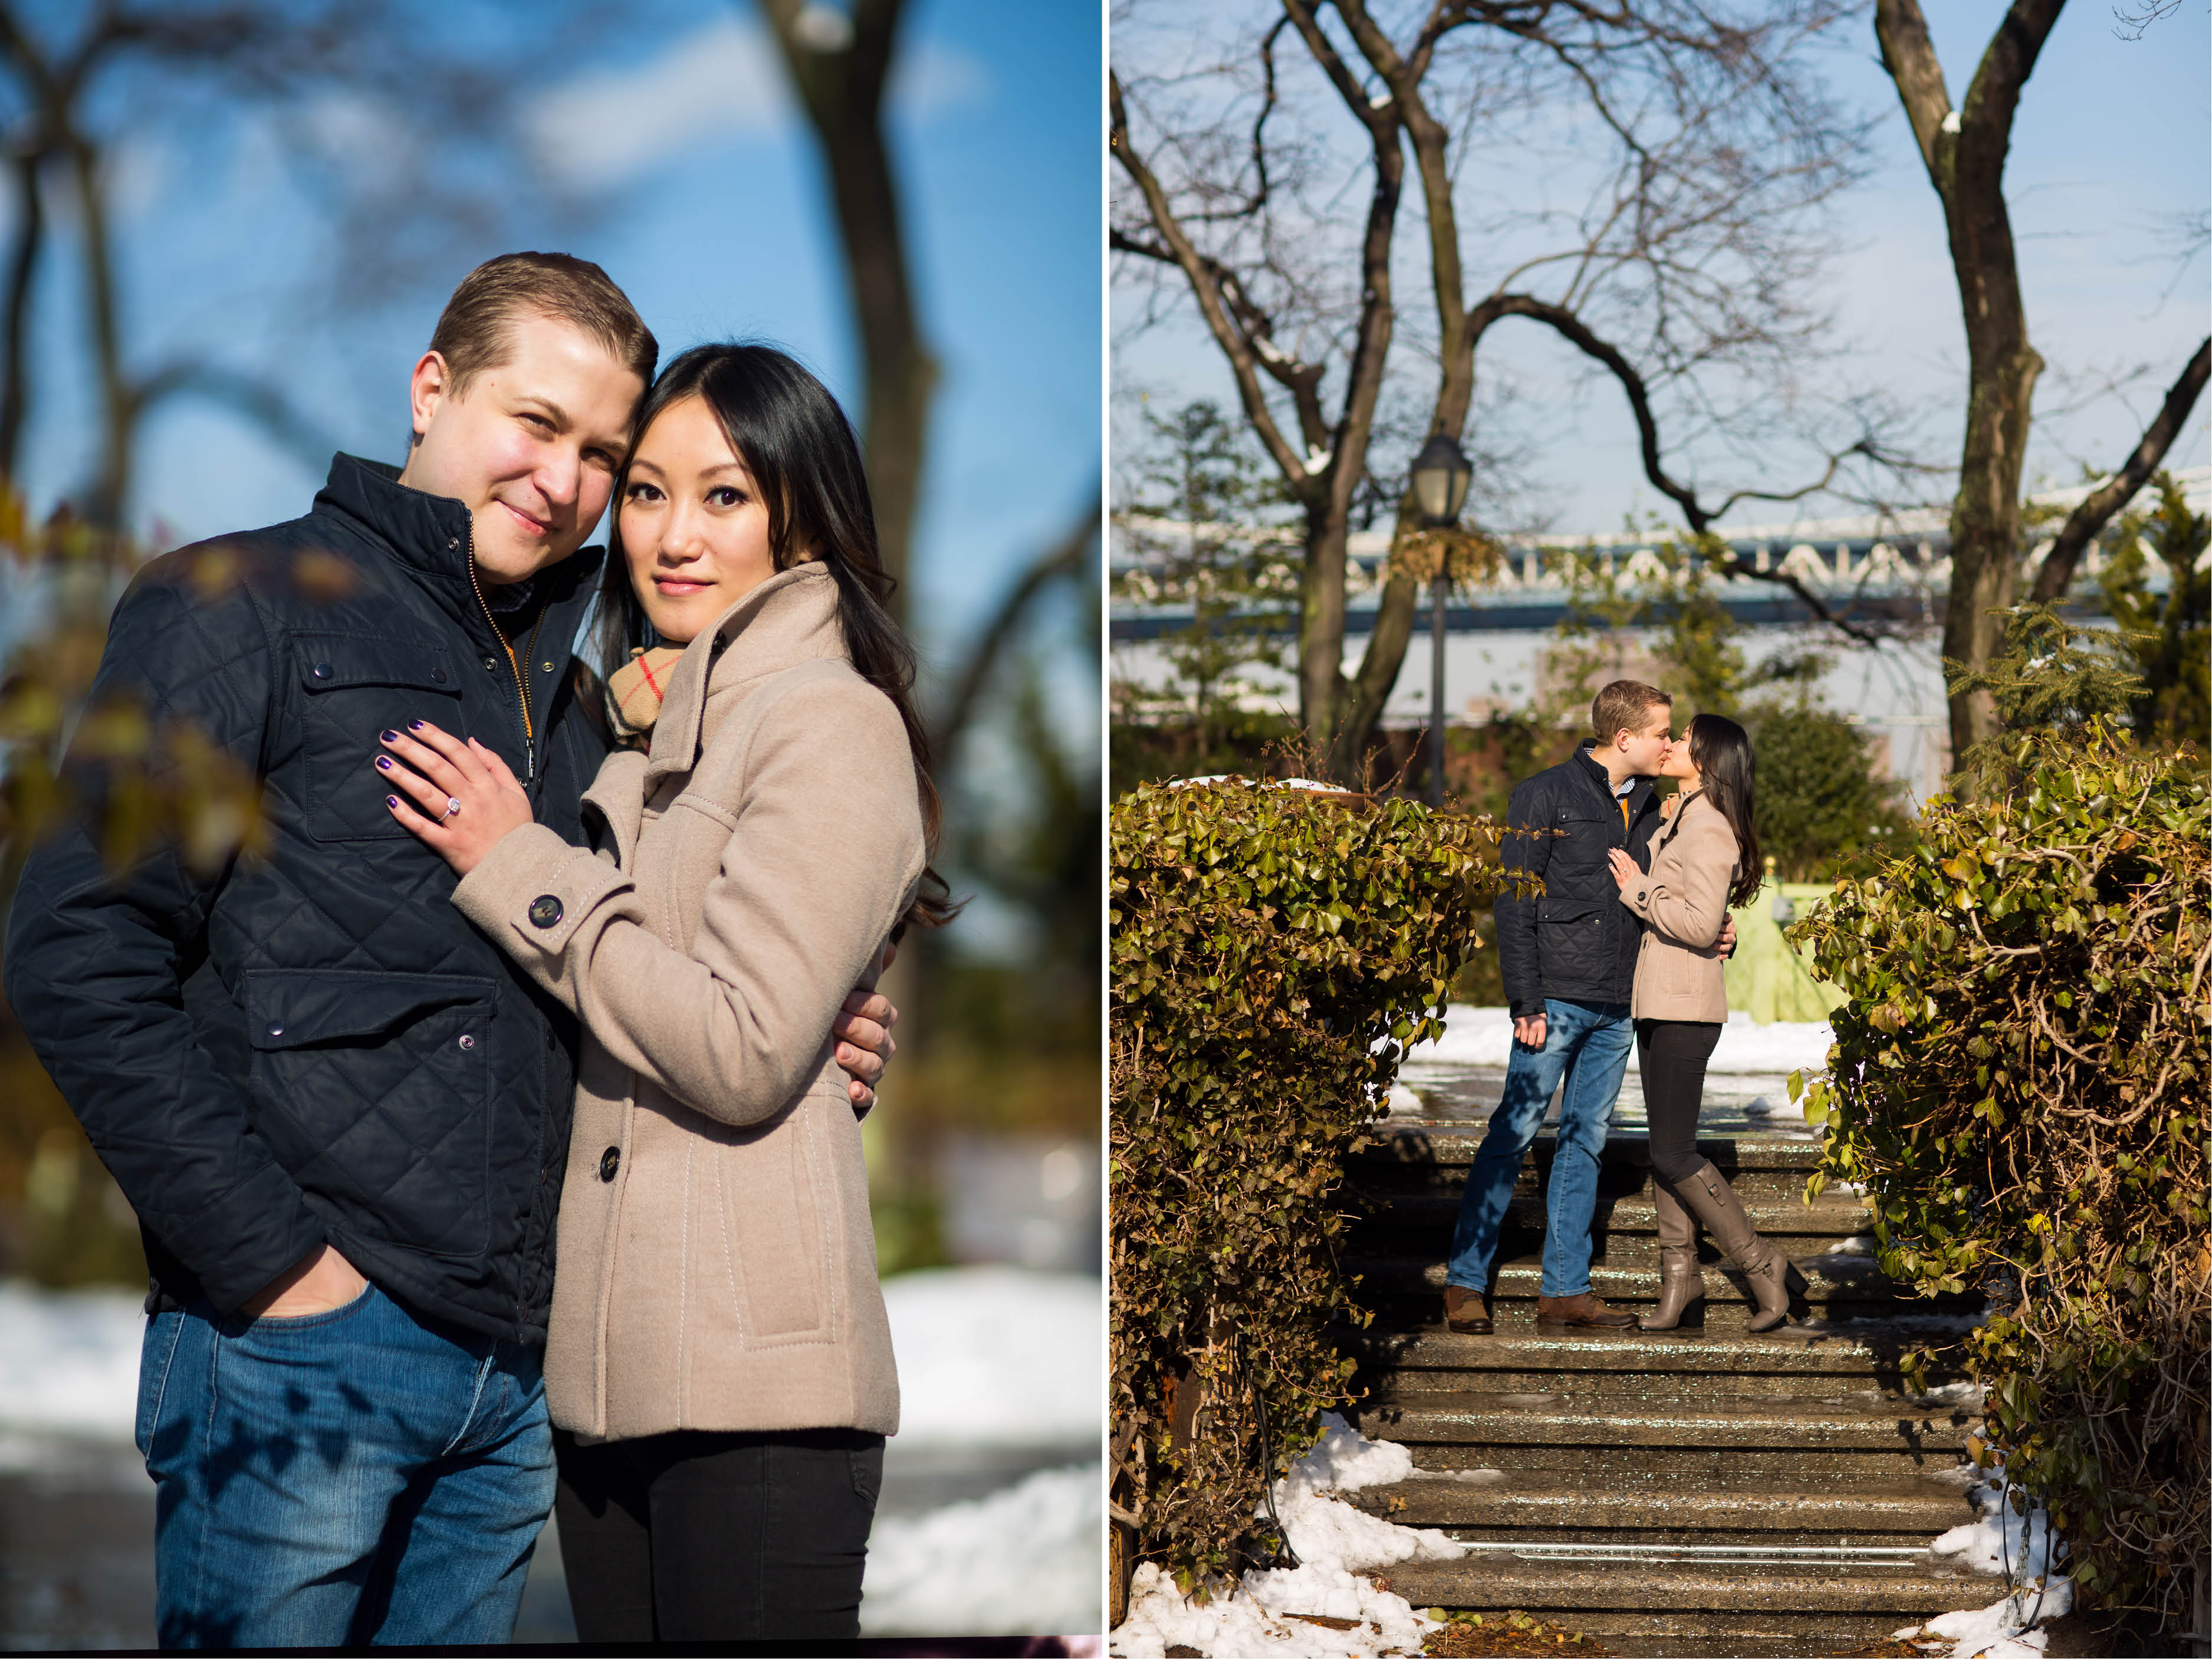 Emma_cleary_photography dumbo engagement9